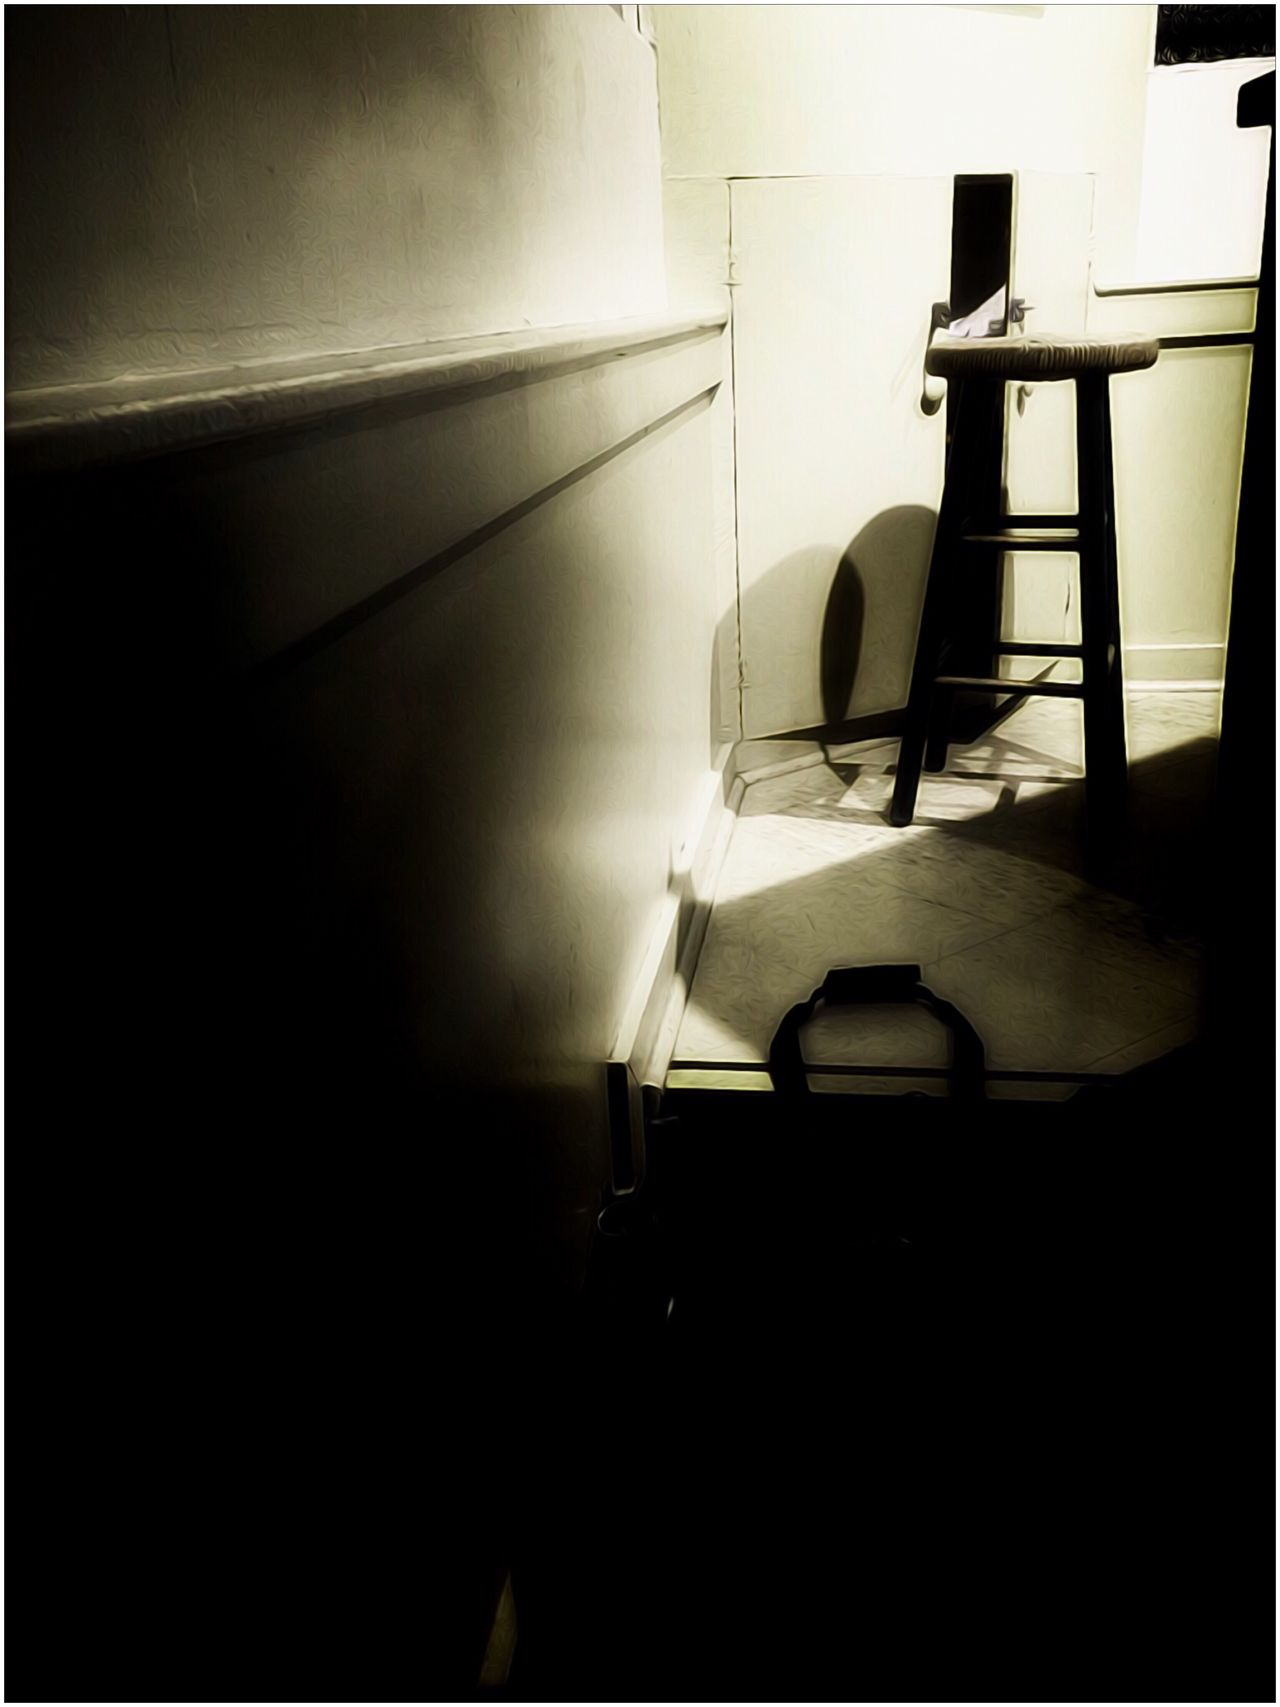 Meeting Hall Stool Black And White Photography Blackandwhite Light And Shadow Lightanddark Indoors  Interior Meetinghall Still Life